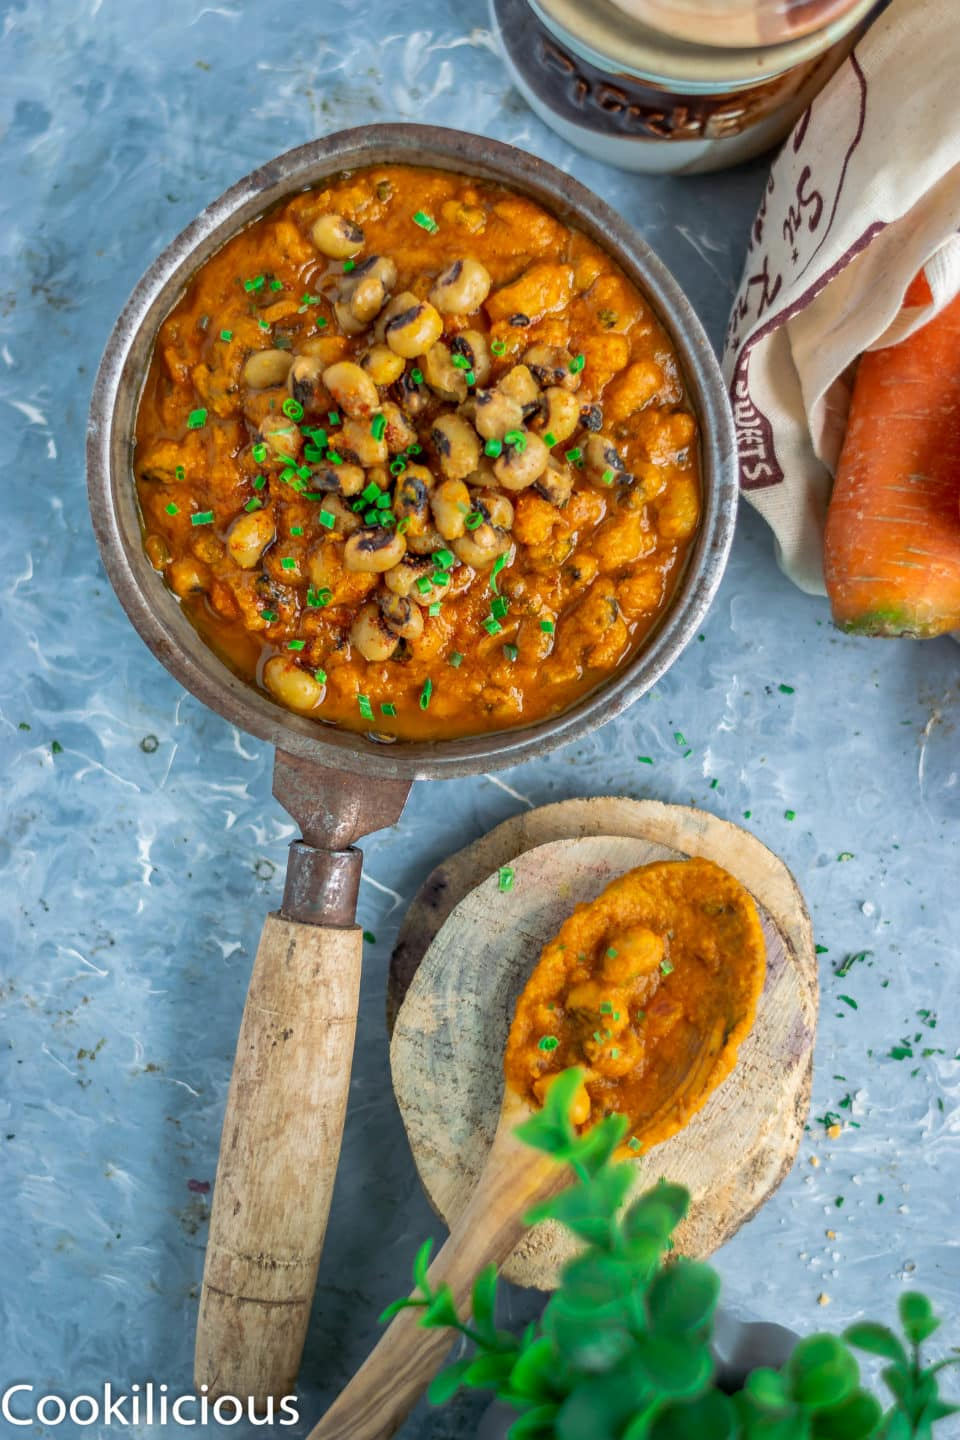 Lobia Ki Khatti Meethi Dal in a small pan and a wooden spoon resting on a wooden coaster next to it